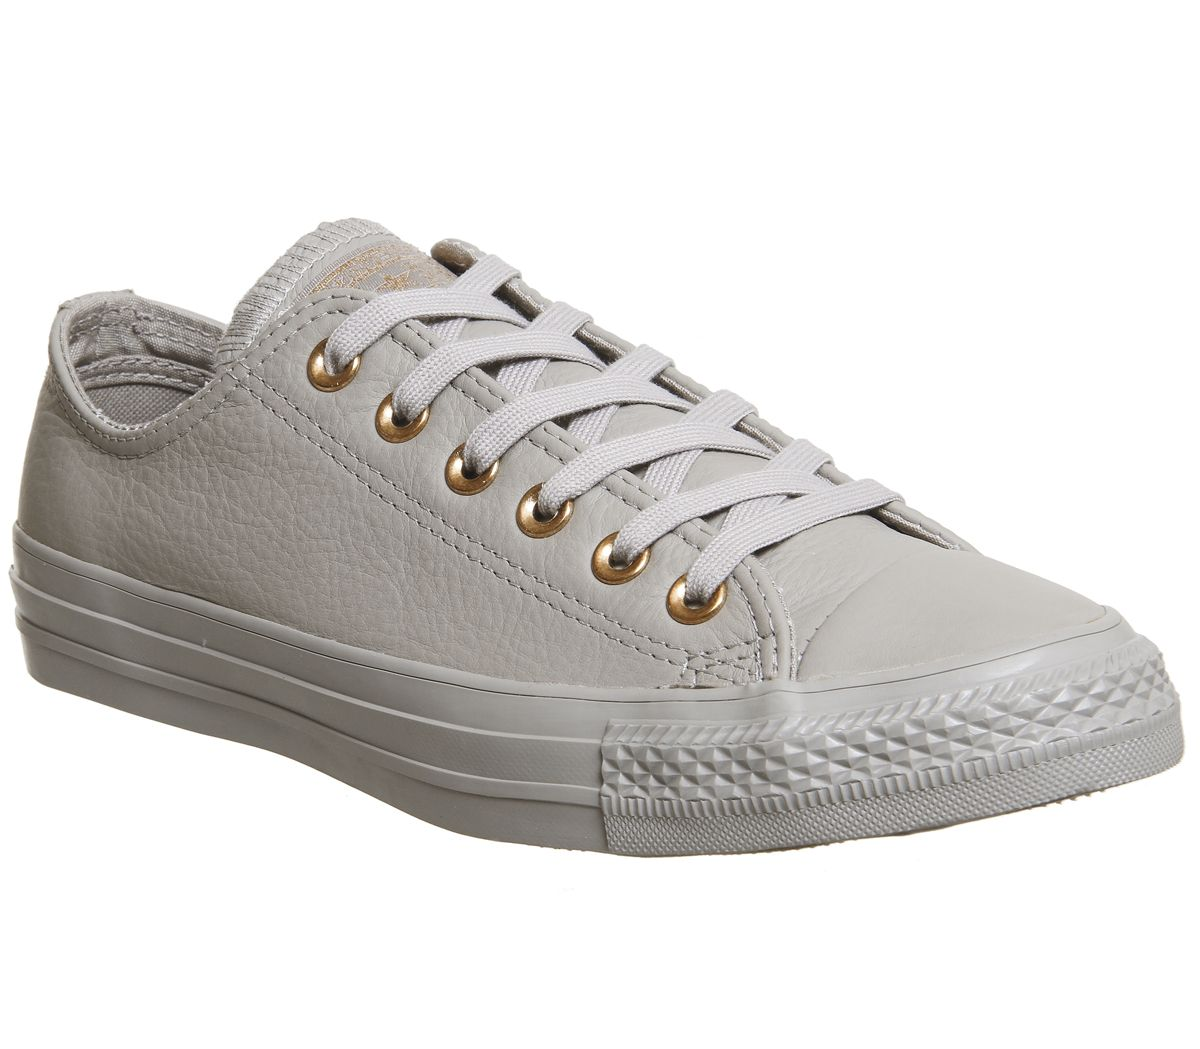 25e1f4290895 Converse All star Low Leather Trainers Malted Rose Gold Exclusive ...